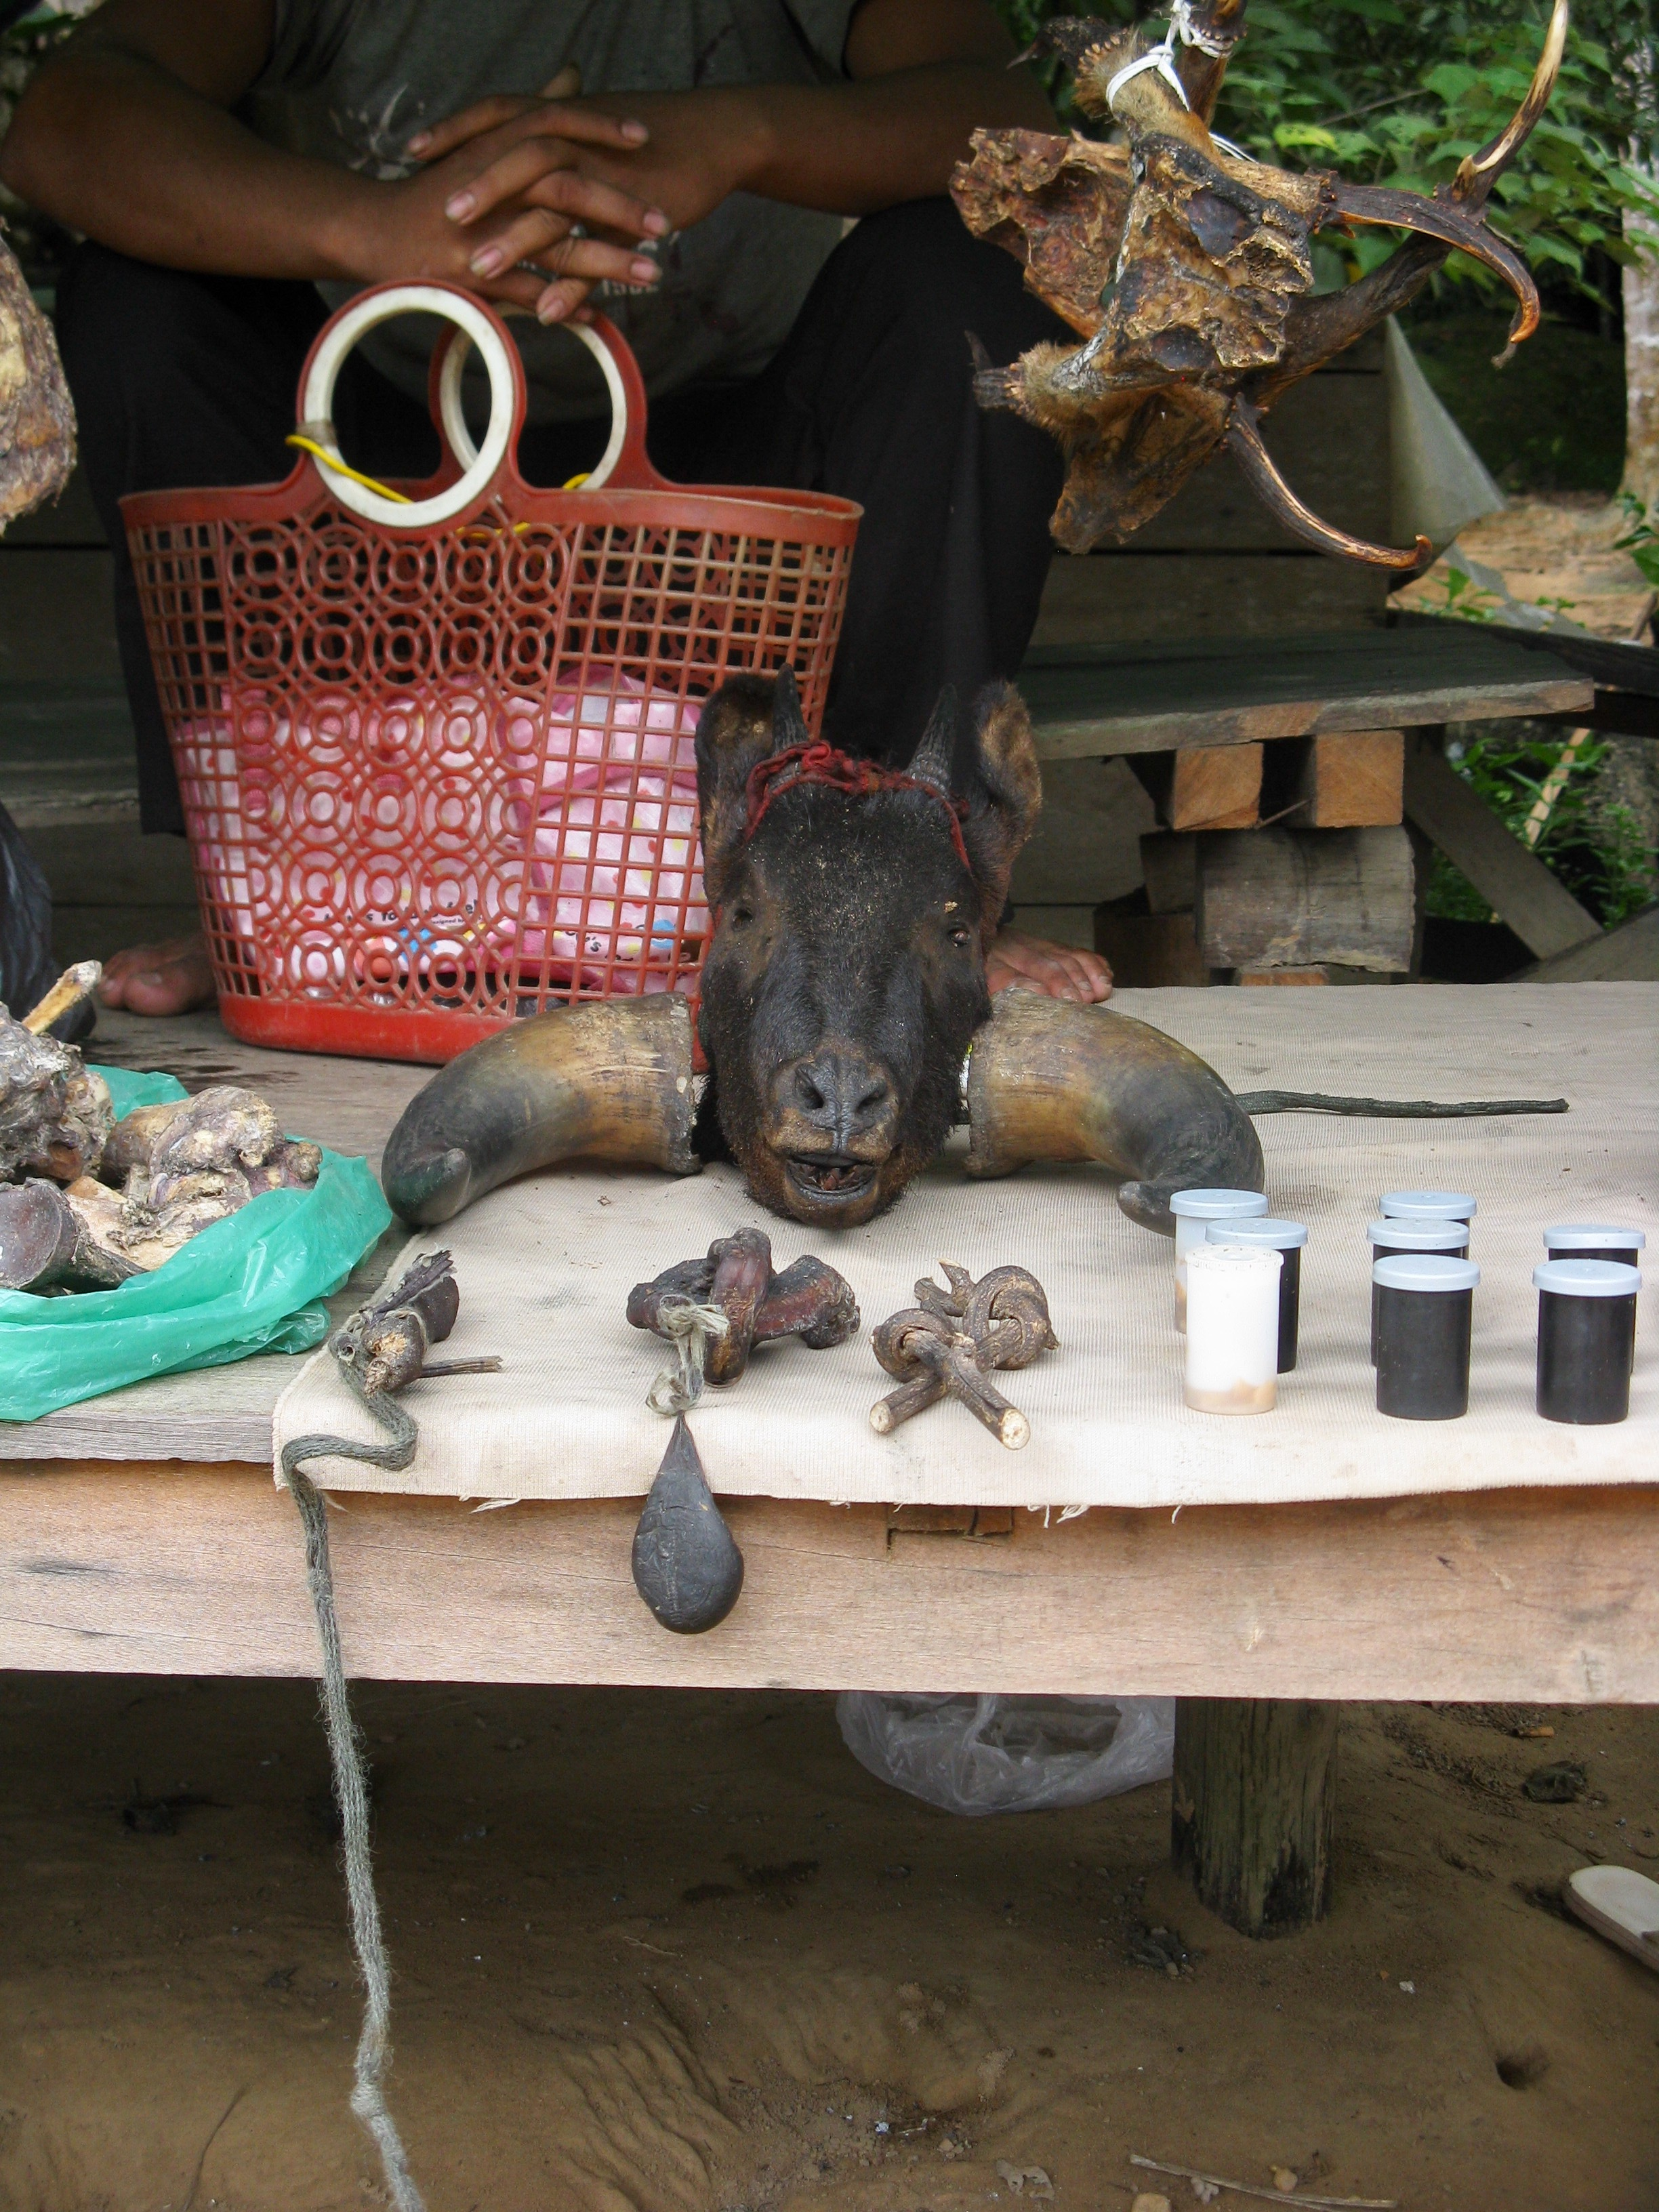 Souvenir and food stalls sell offerings — including preserved goat heads!